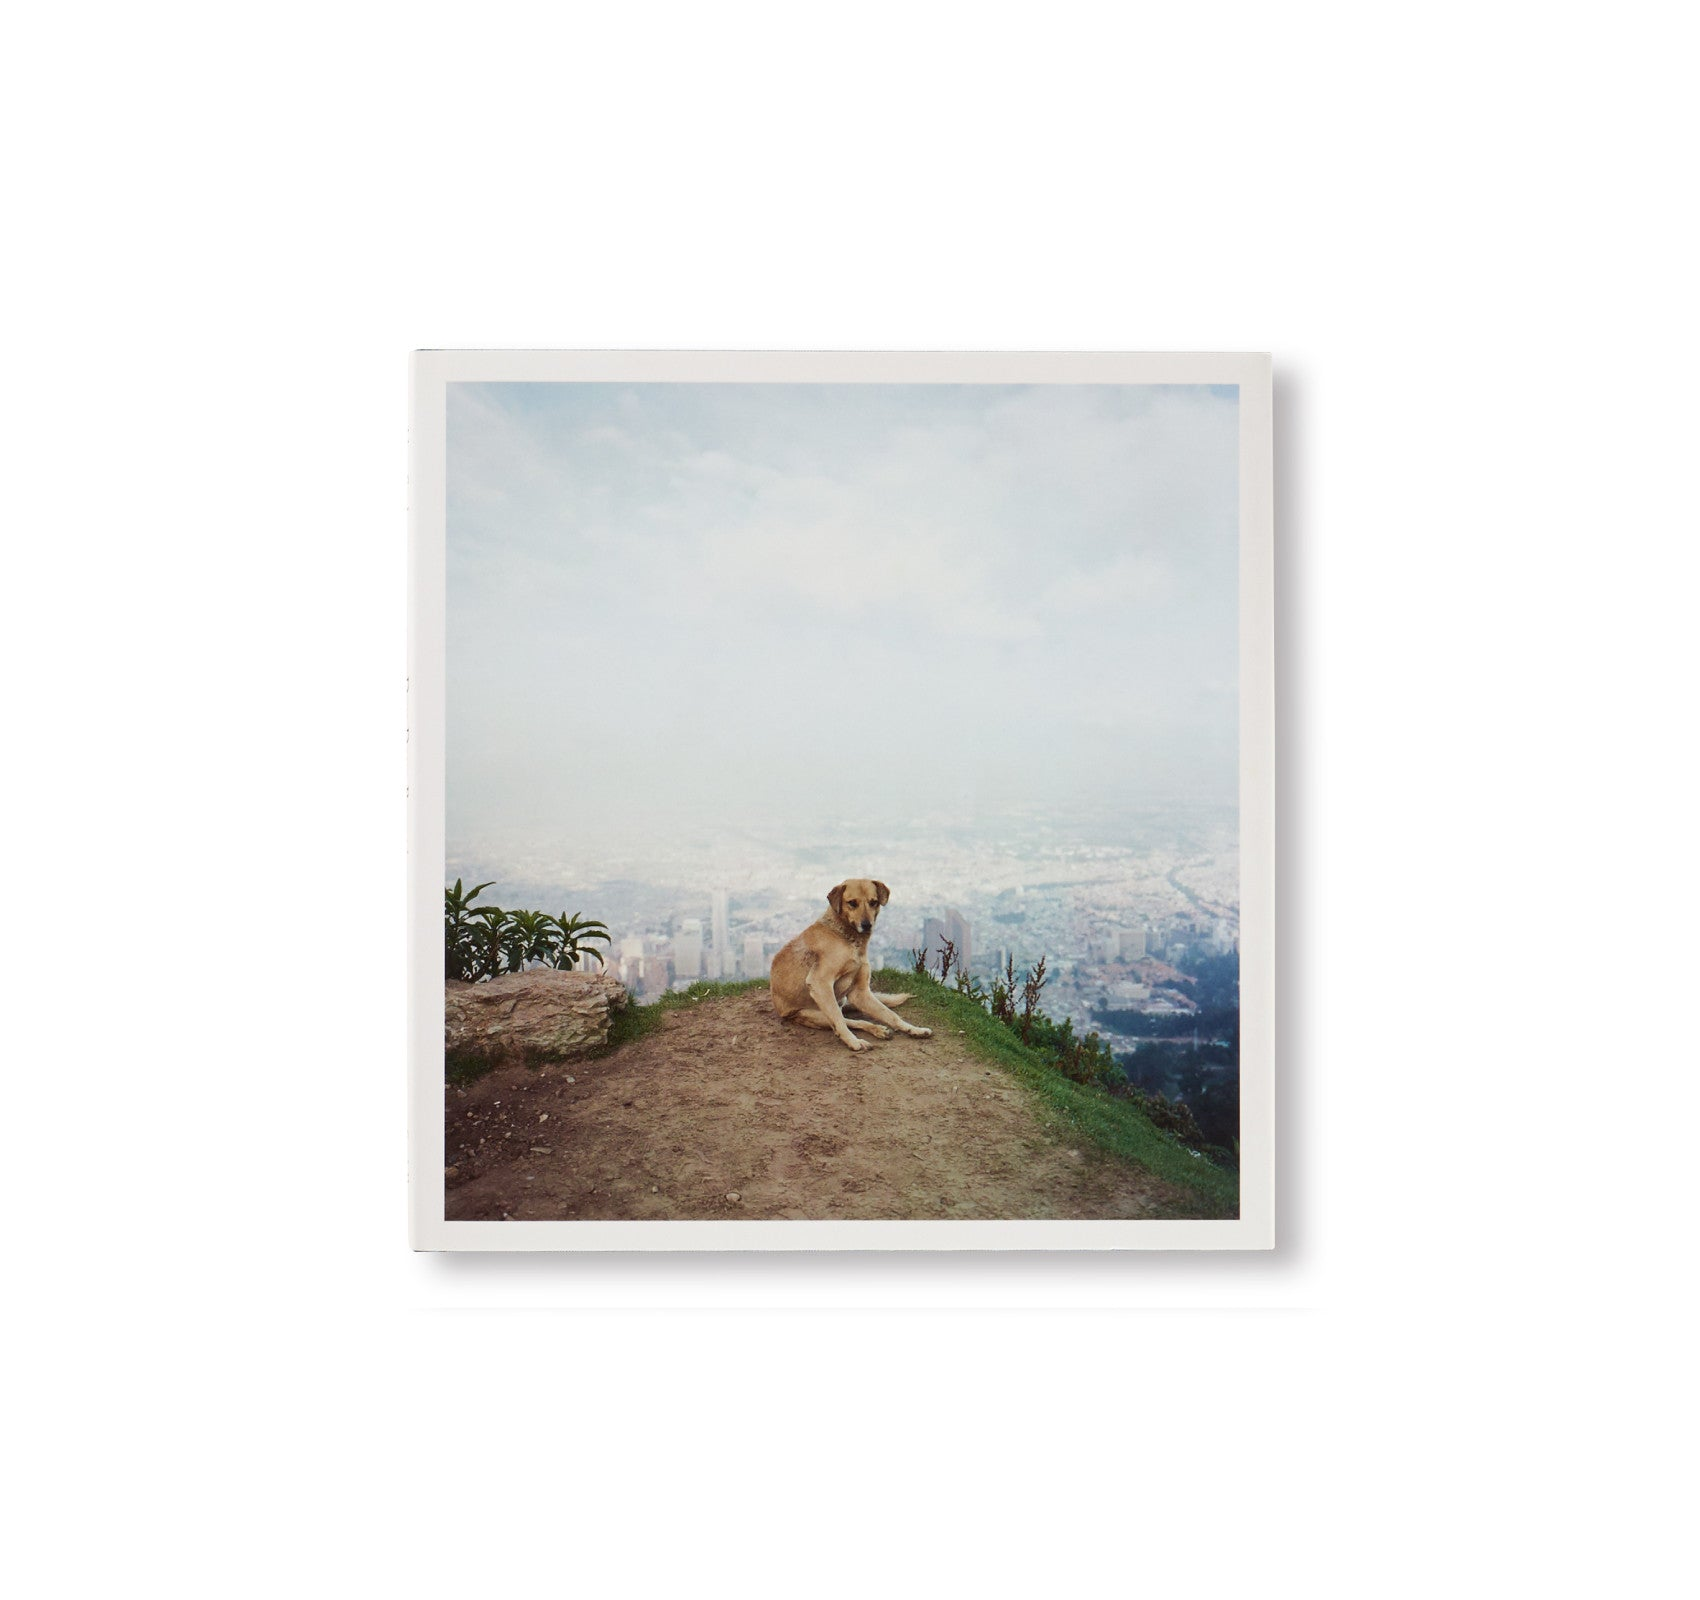 DOG DAYS BOGOTÁ by Alec Soth [SPECIAL EDITION]